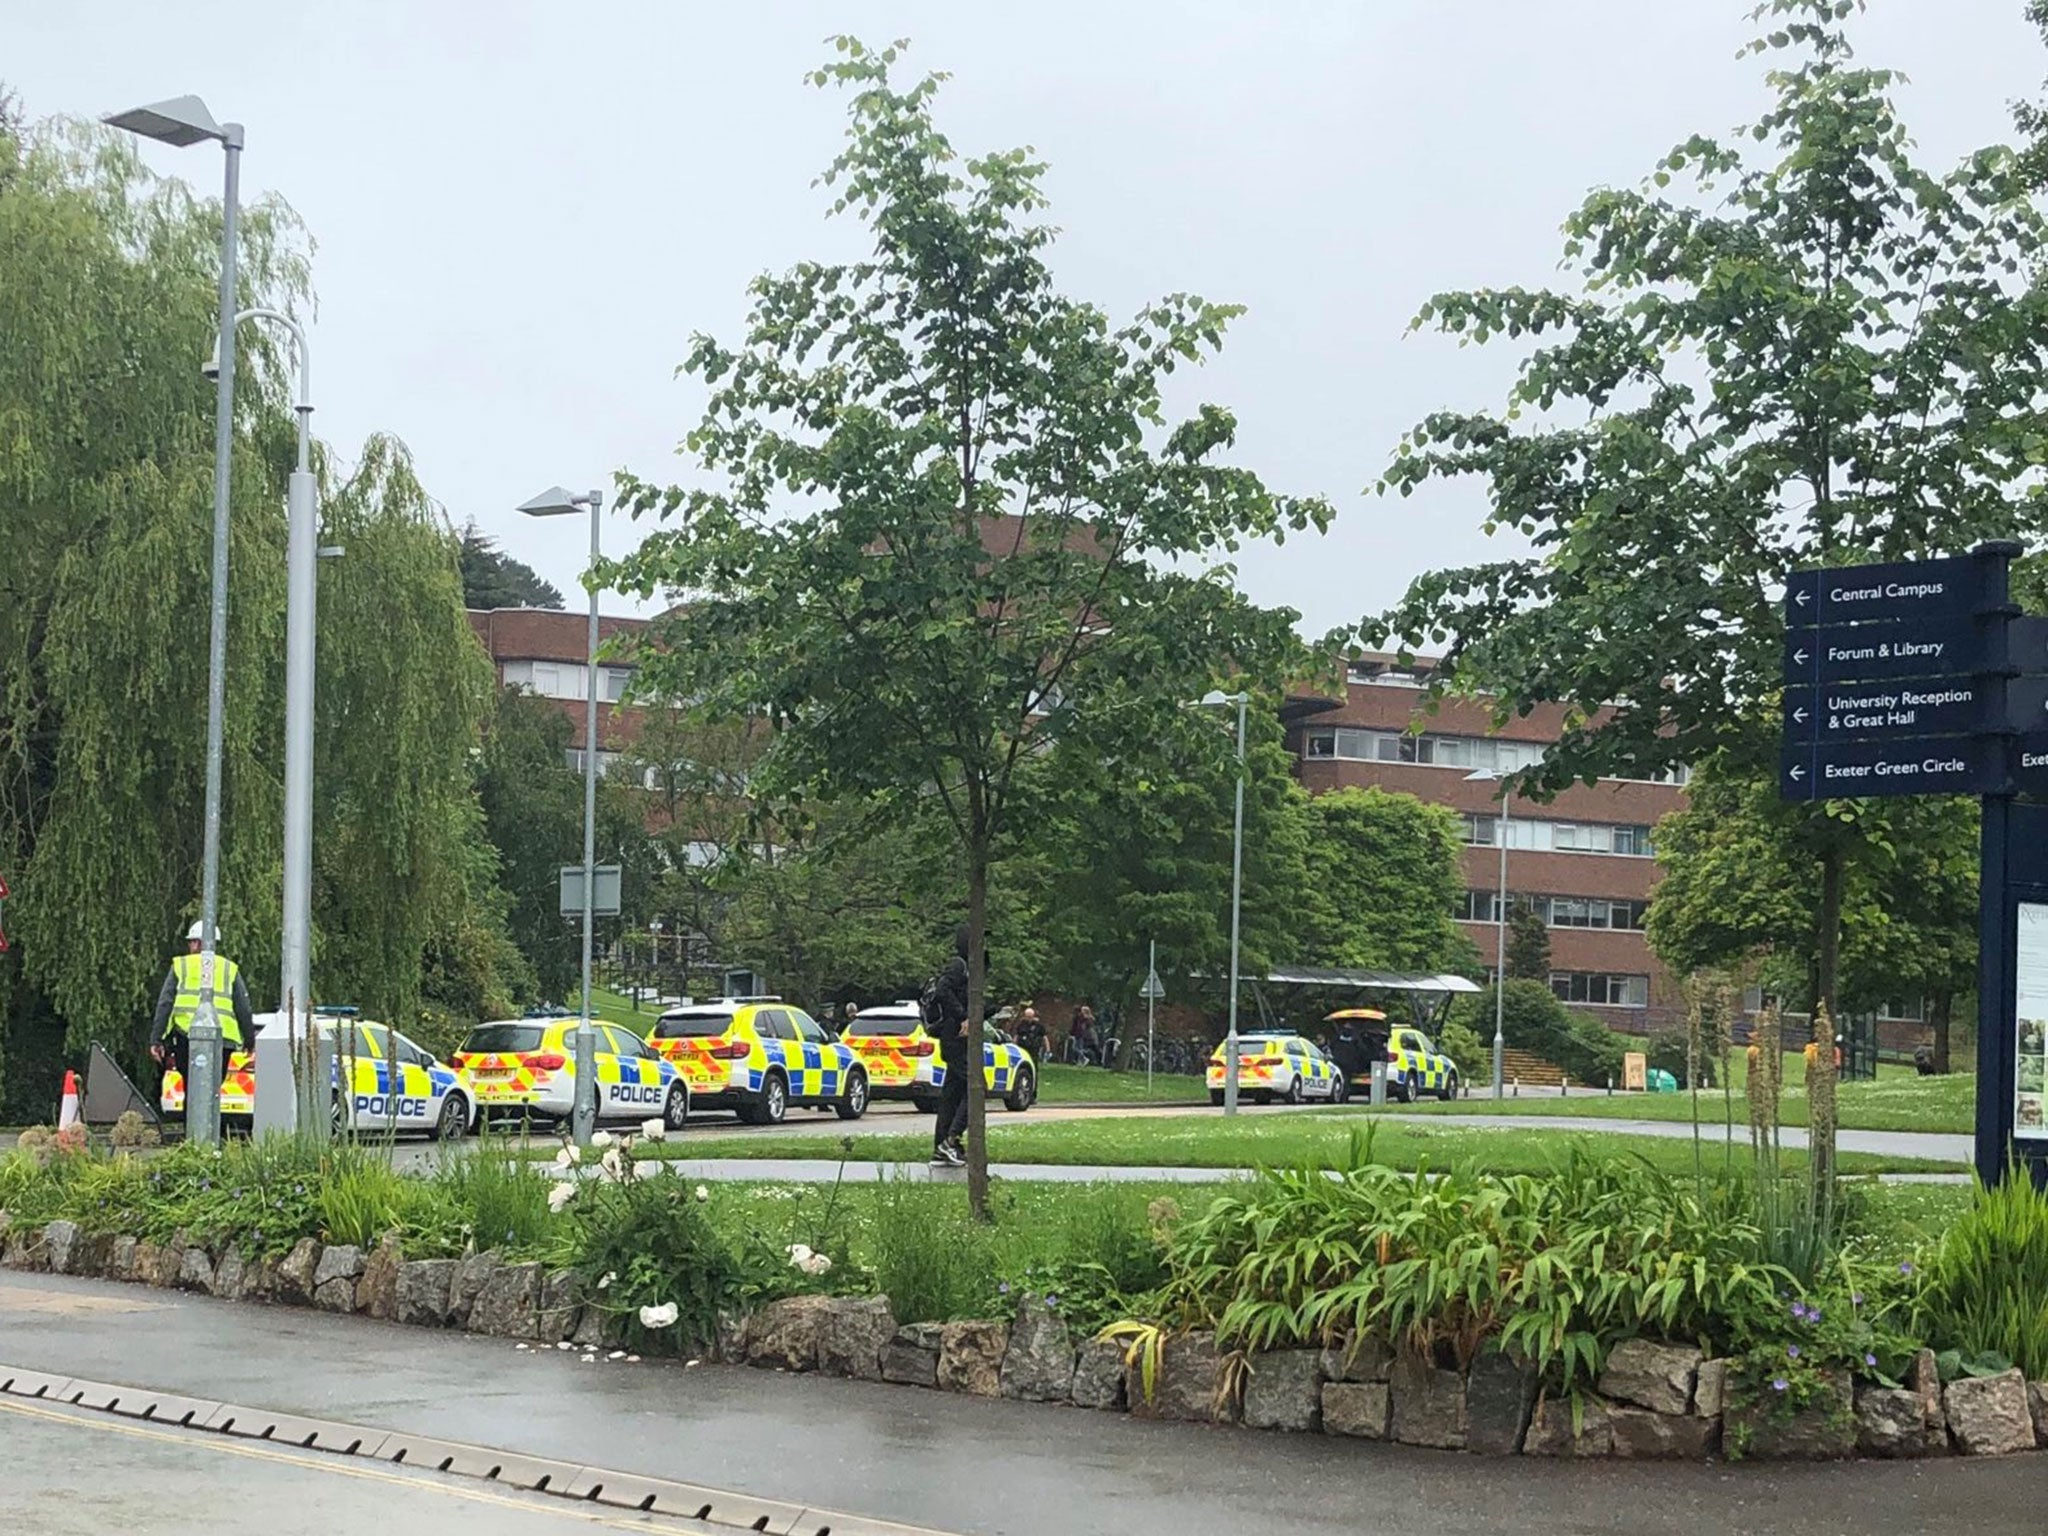 Exeter University: Armed police scrambled after student 'makes threats with handgun'